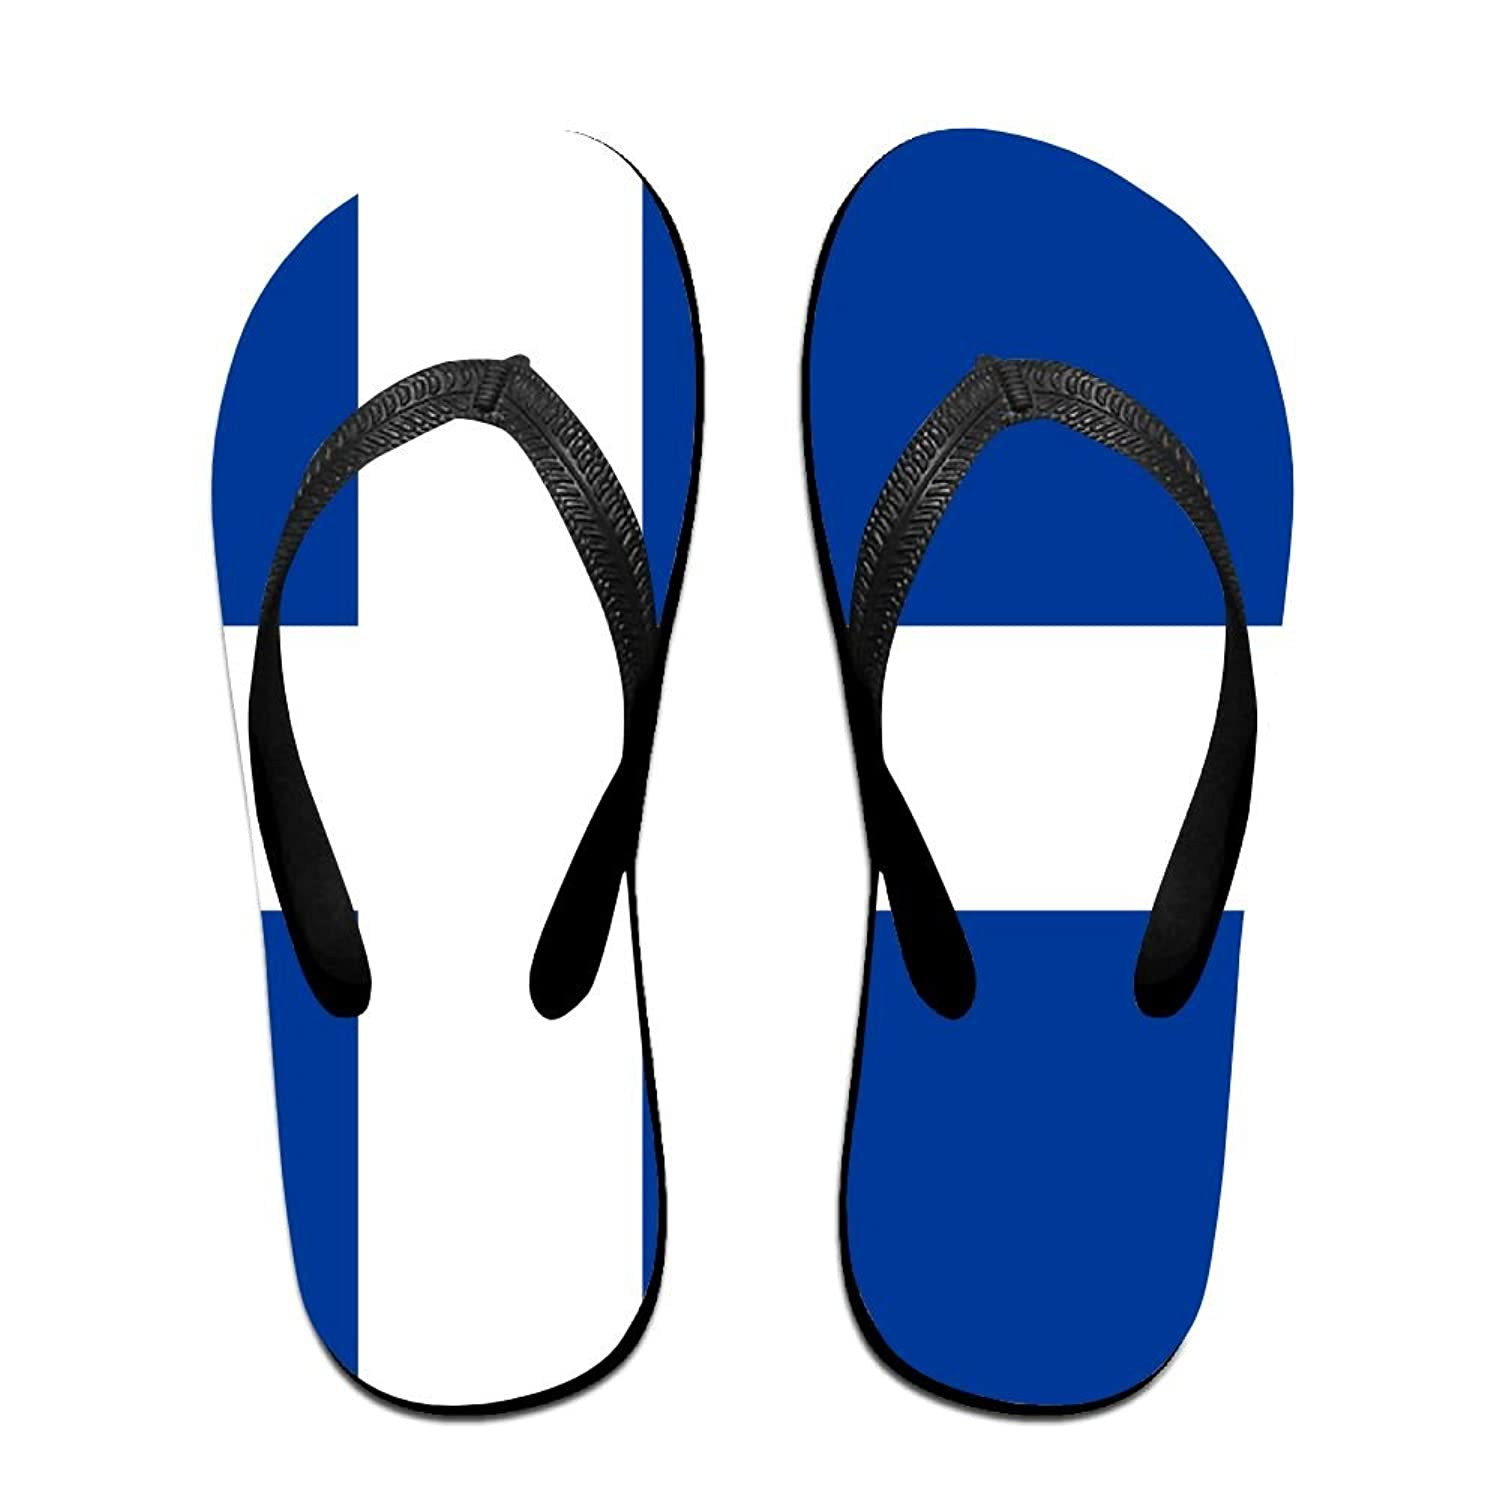 Flag Of Iceland Cozy Flip Flops For Children Adults Men And Women Beach Sandals Pool Party Slippers